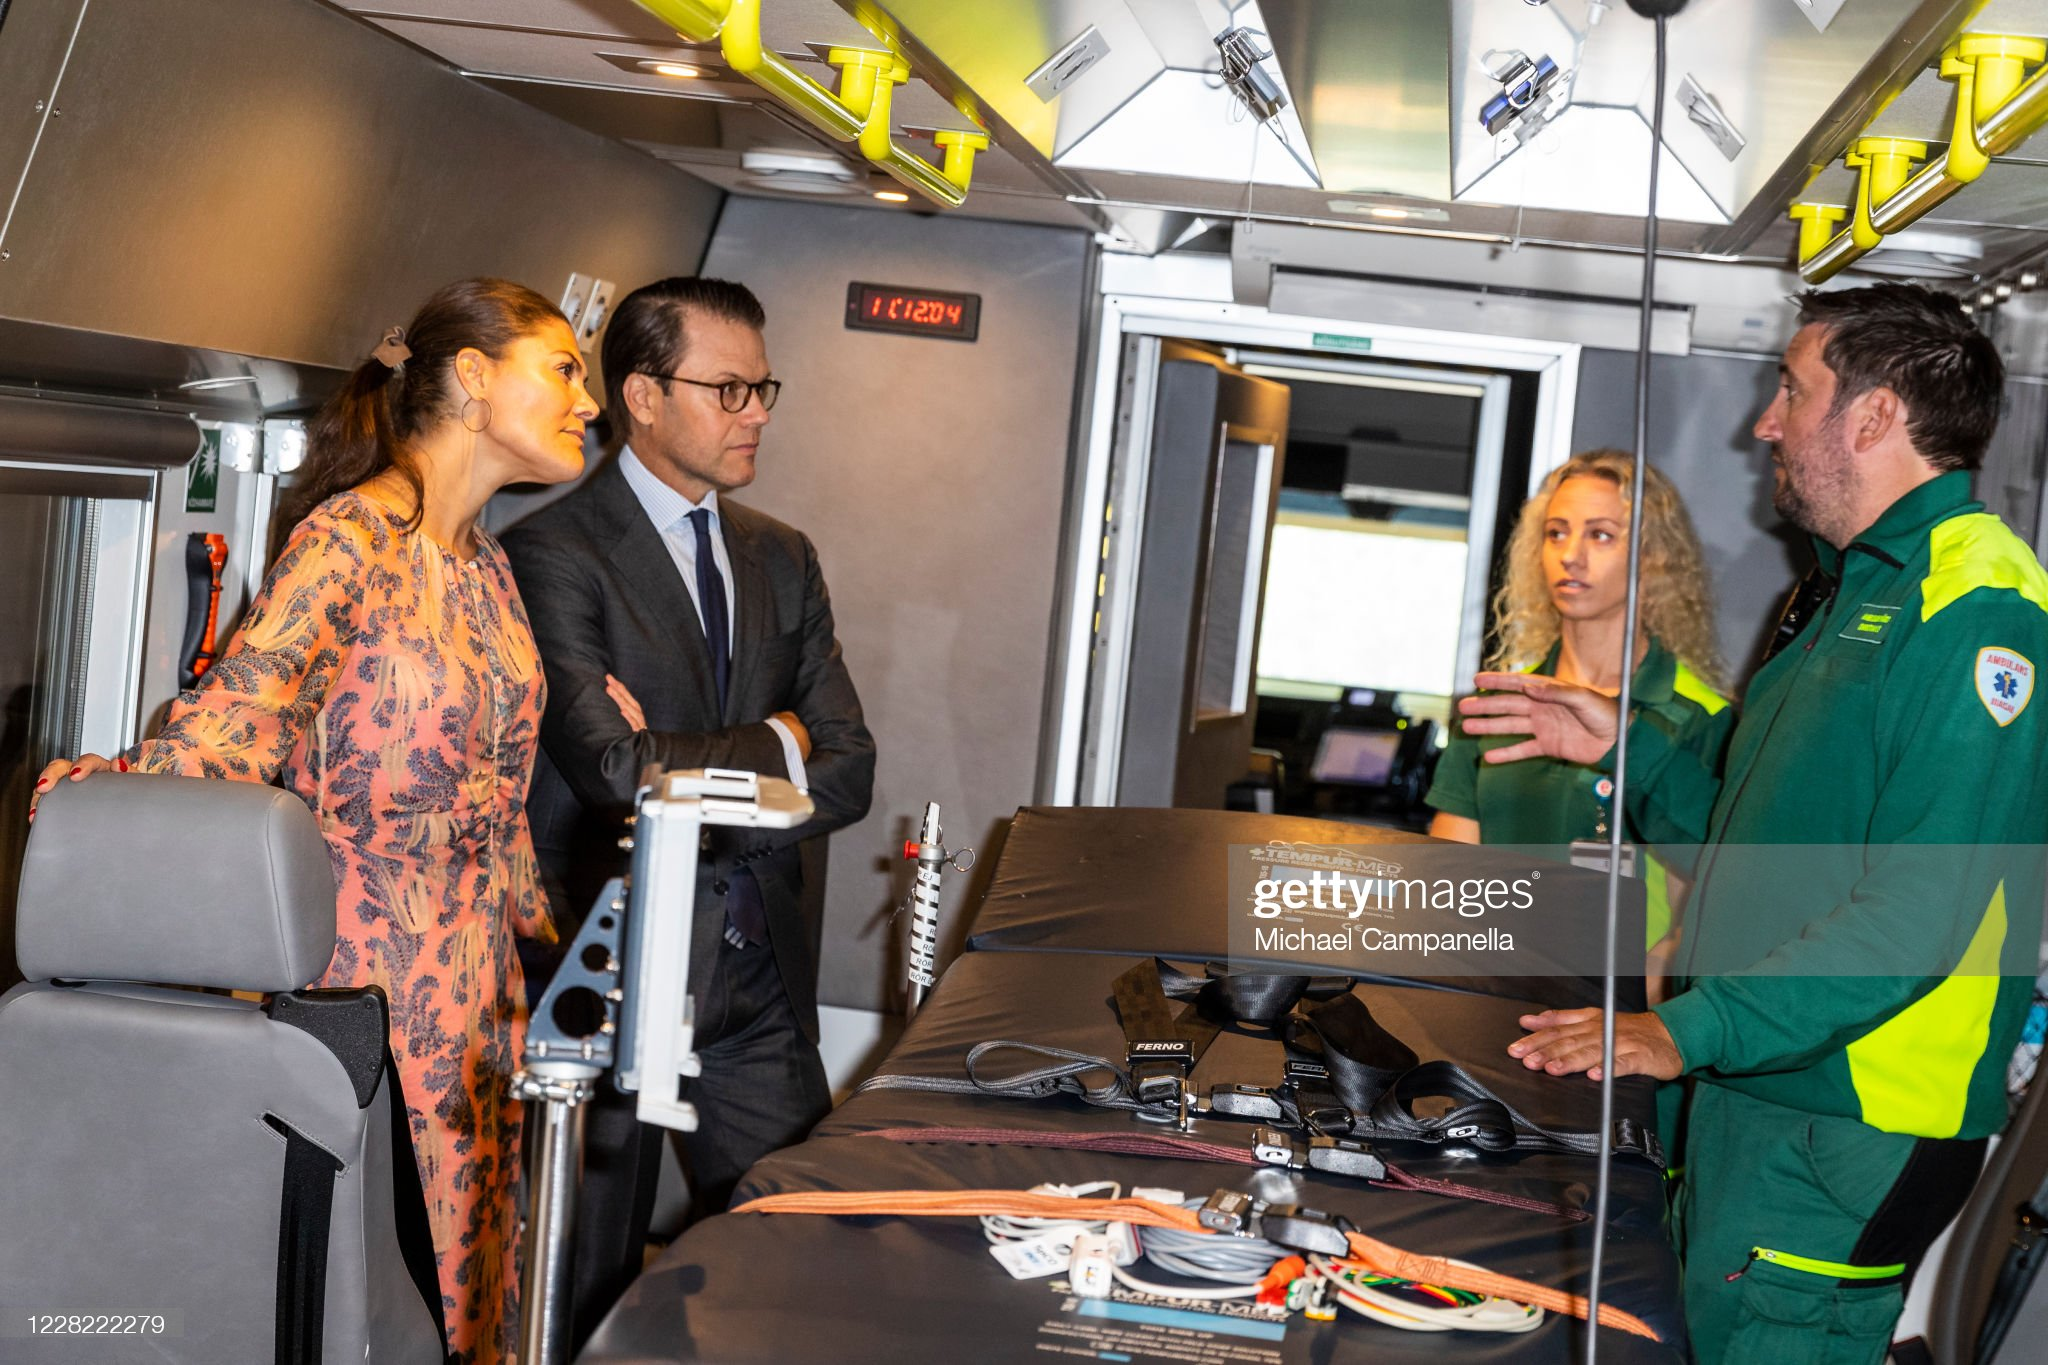 crown-princess-victoria-and-prince-daniel-of-sweden-visit-an-station-picture-id1228222279